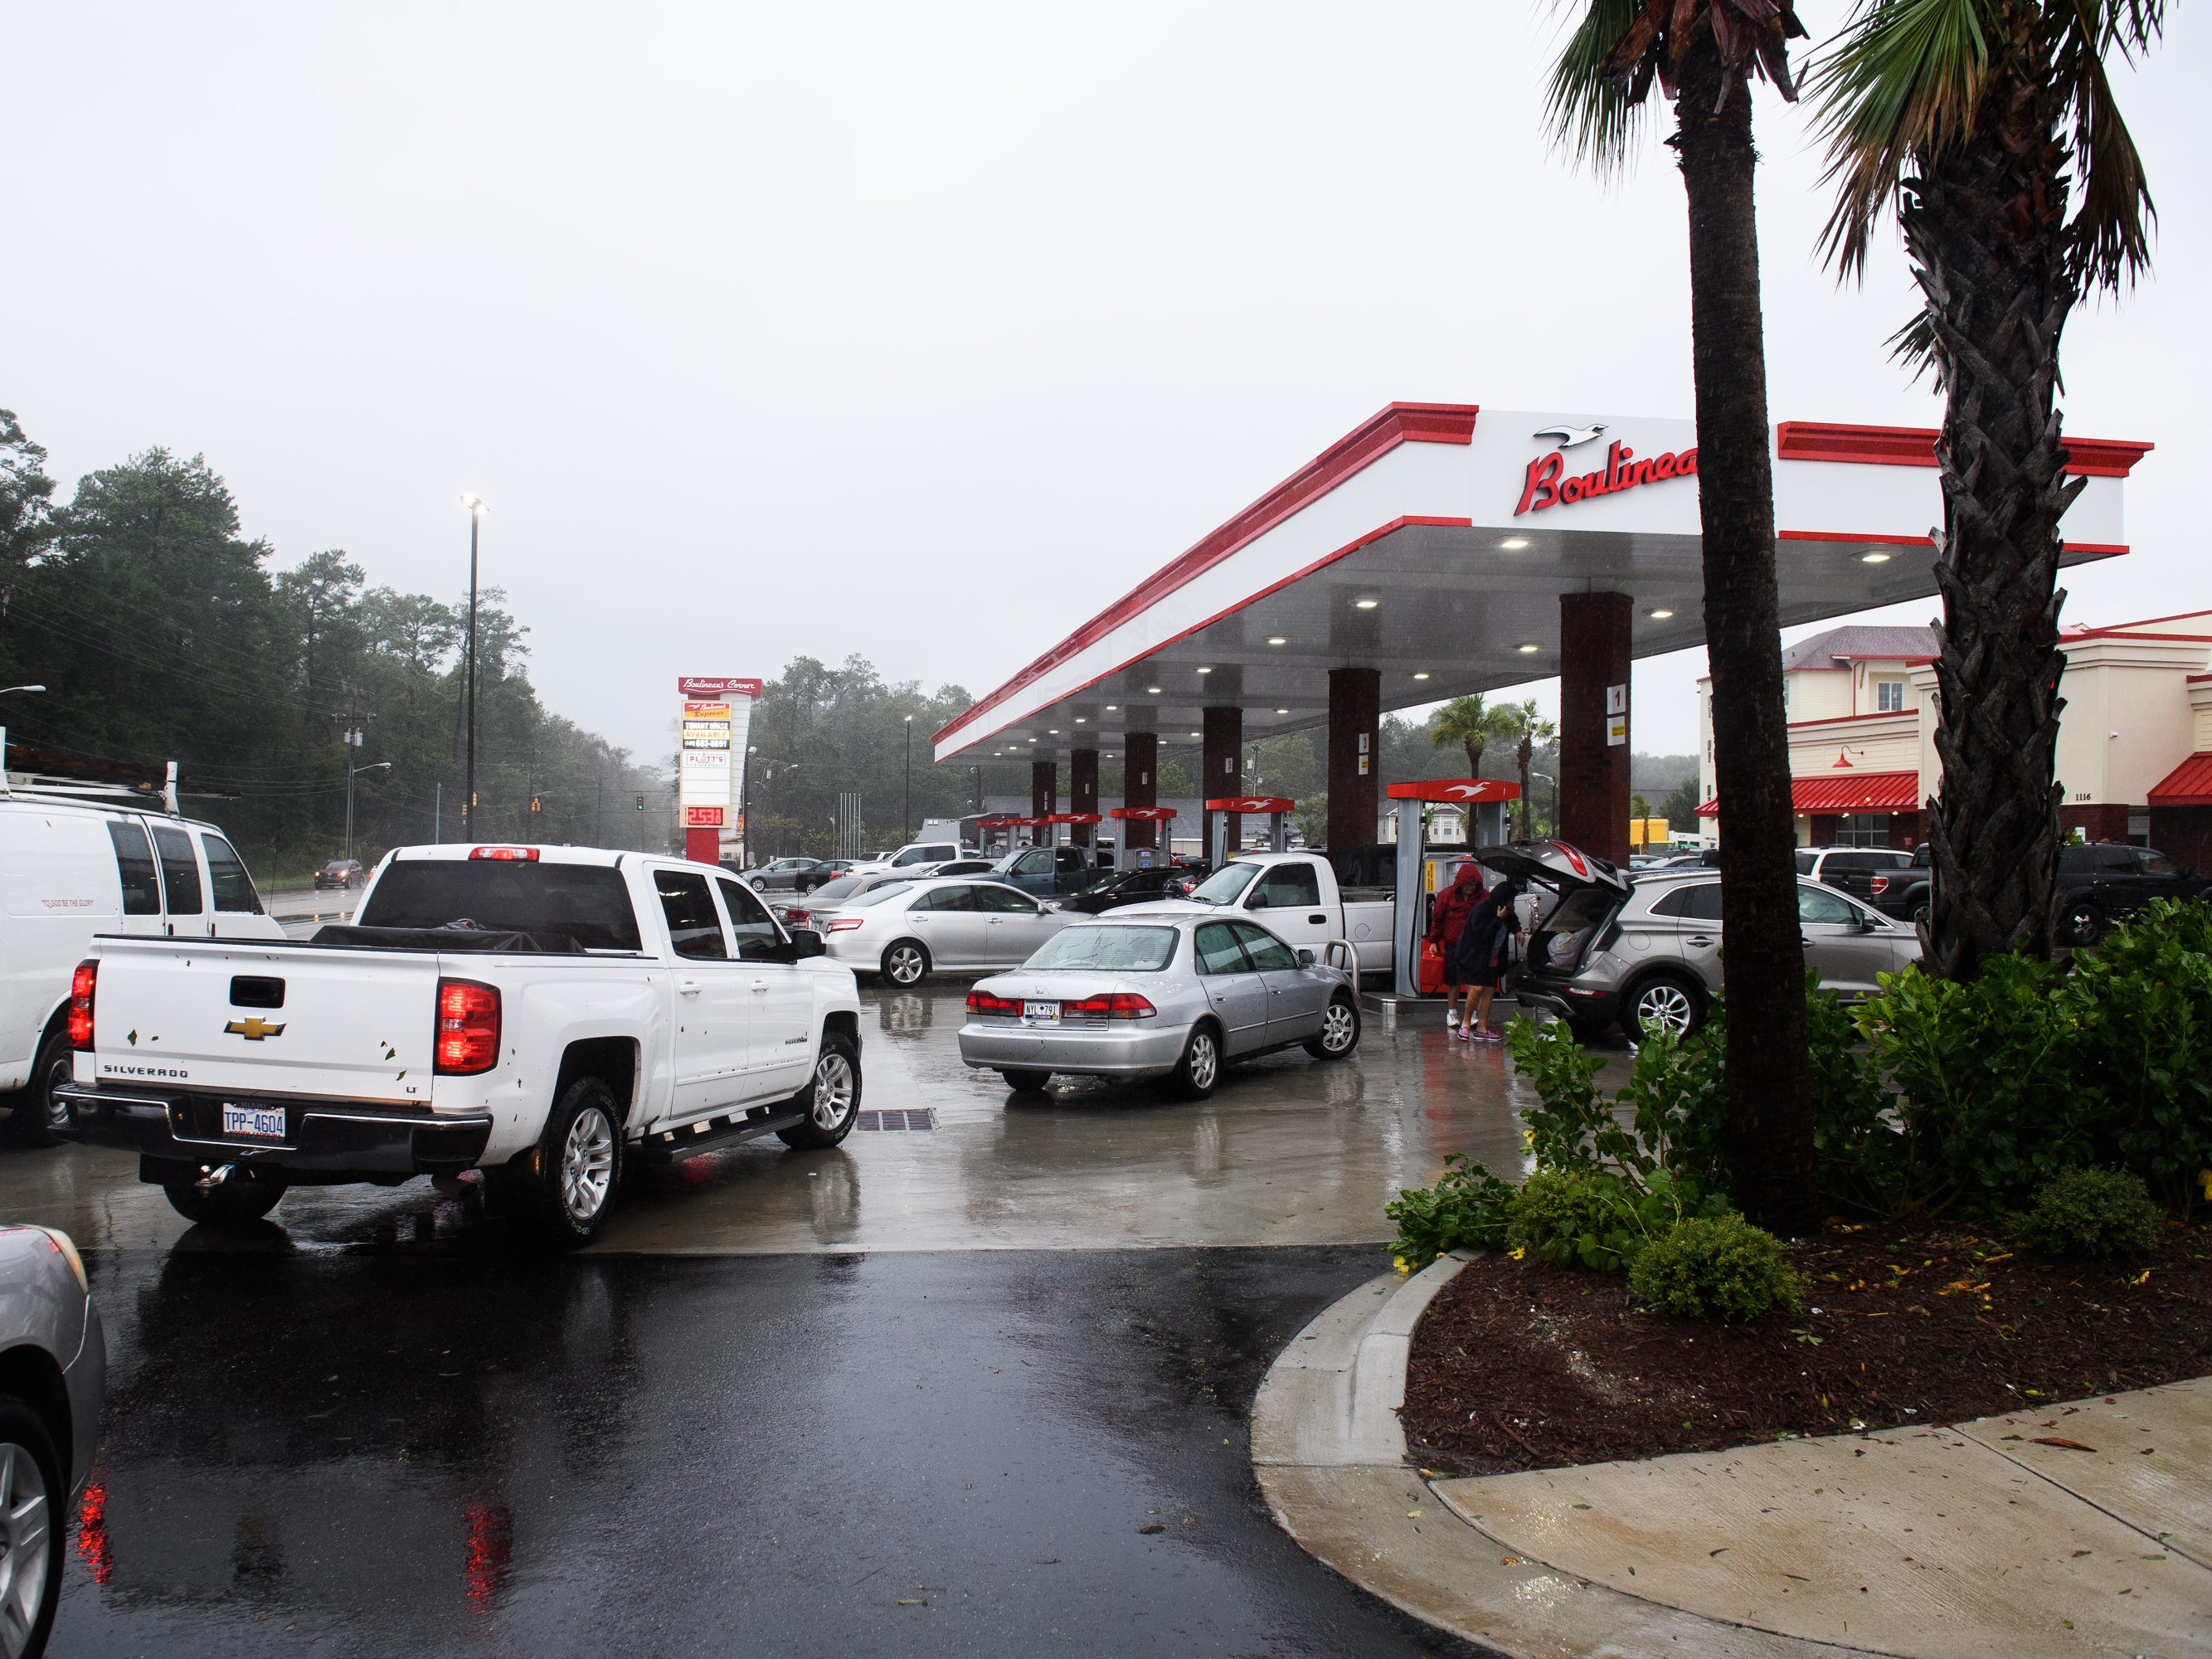 North Myrtle Beach residents swarm Boulineau's Corner, one of the first gas stations to open since Hurricane Florence swept through the area, on Saturday, Sept. 15, 2018.